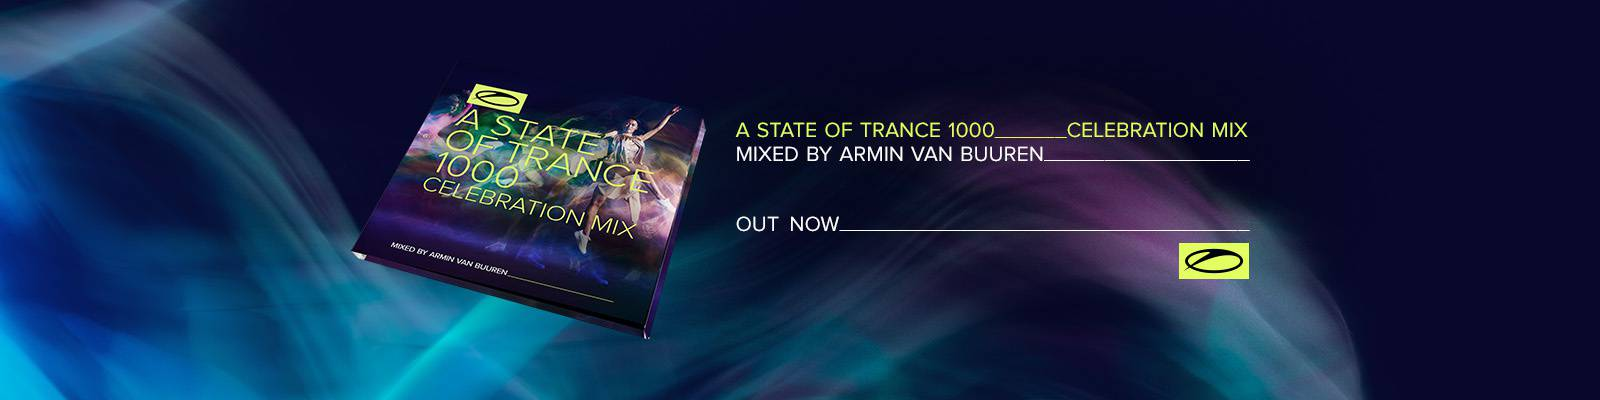 The 'A State Of Trance 1000 – Celebration Mix (Mixed by Armin van Buuren)' is out now!